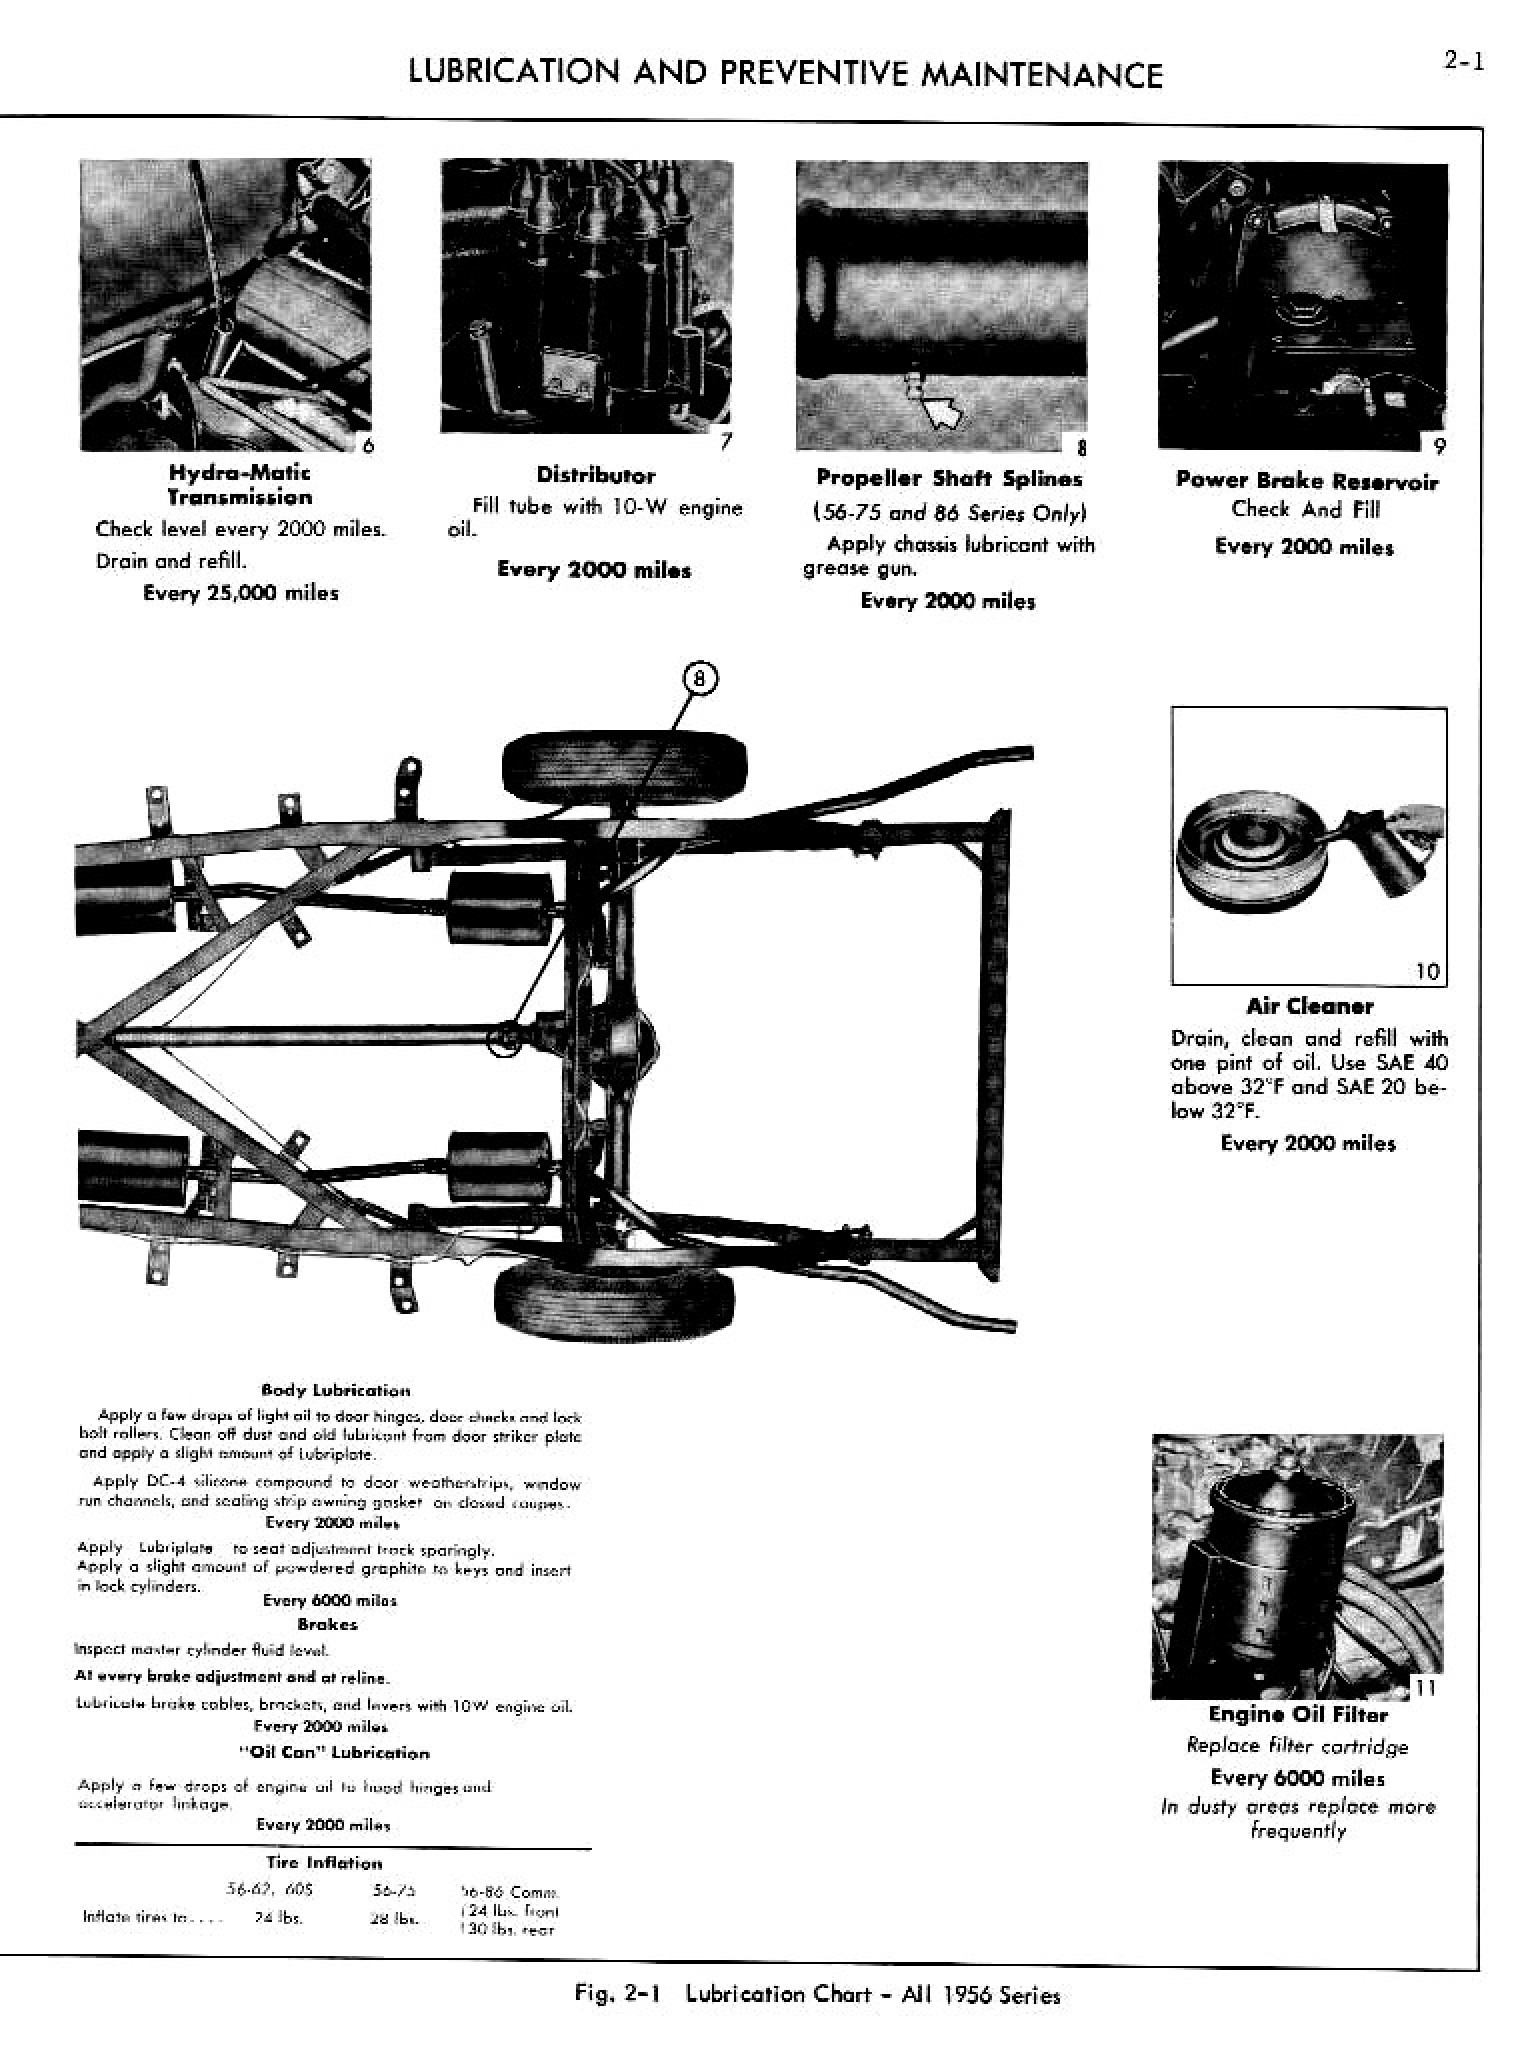 1956 Cadillac Shop Manual- Lubrication Page 2 of 9